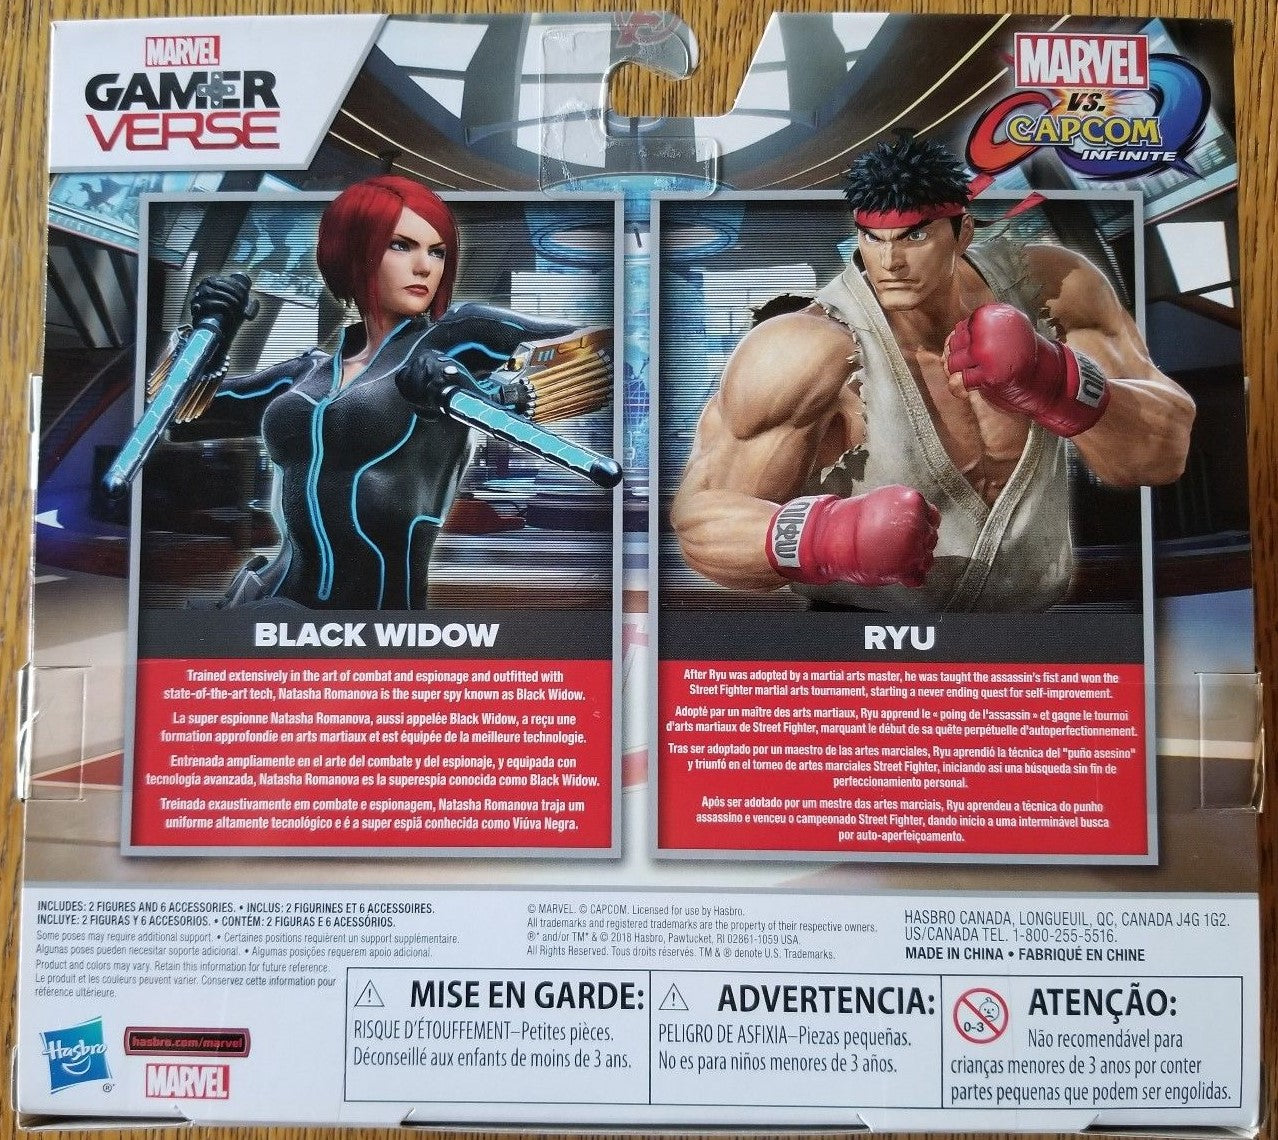 Hasbro - Marvel Gamerverse - Marvel vs Capcom Infinite - Black Widow + Ryu Street Fighter (E3595)